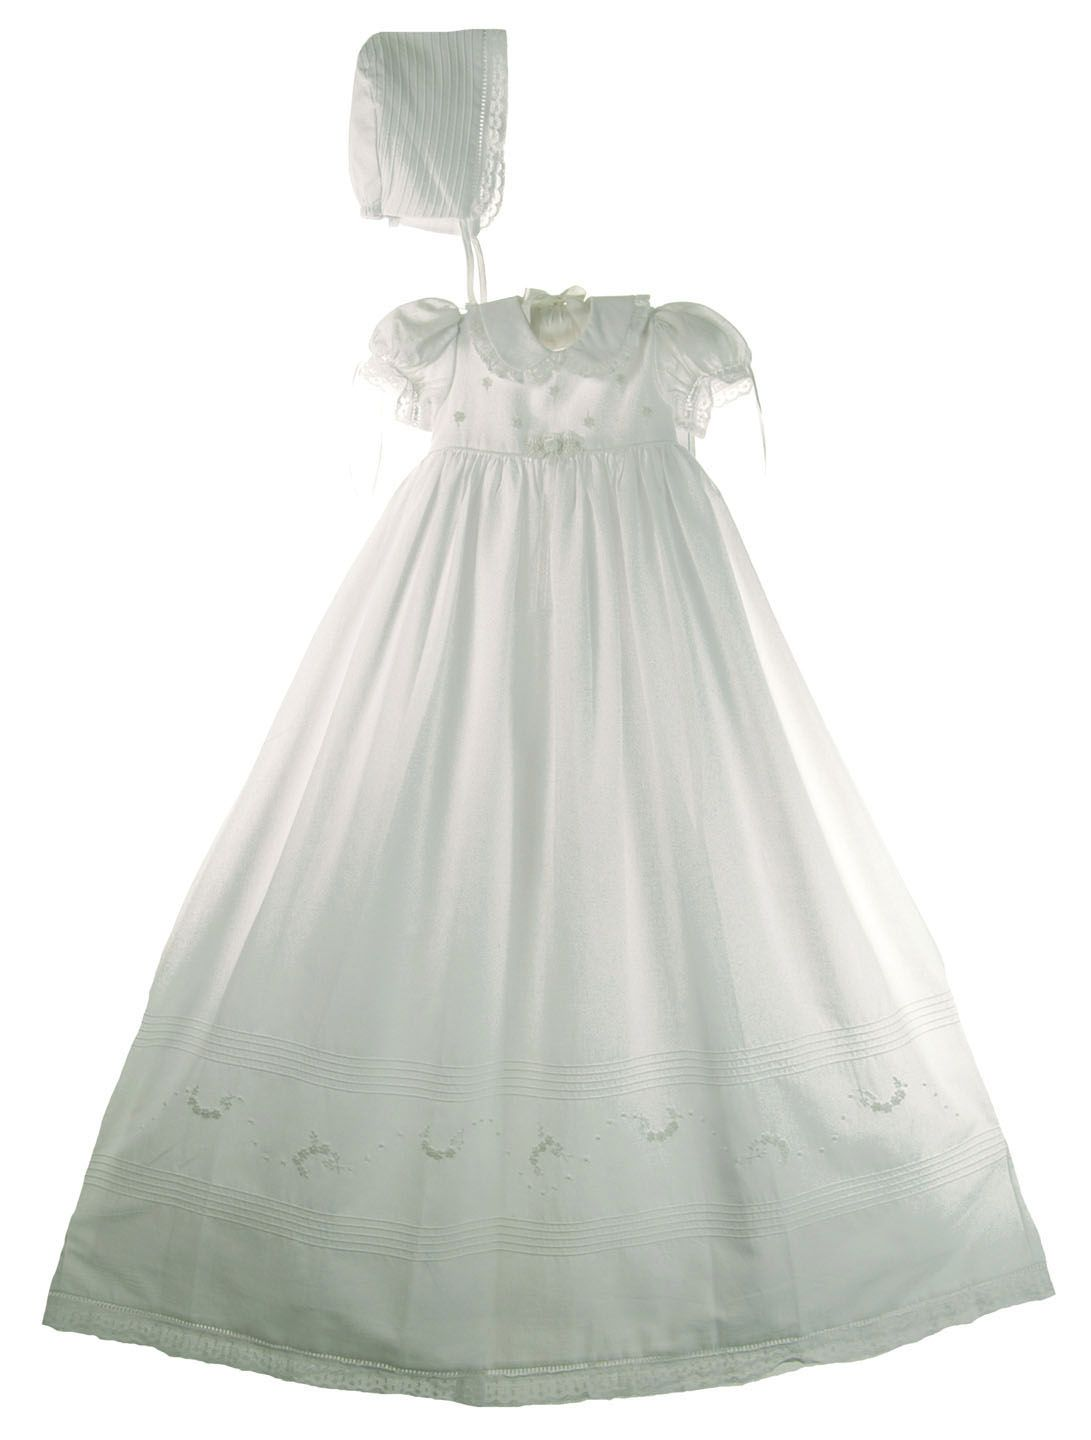 c890e81b6 NEW Will'Beth White Cotton Christening Gown with Lace, Embroidered Flowers,  and Seed Pearls $175.00